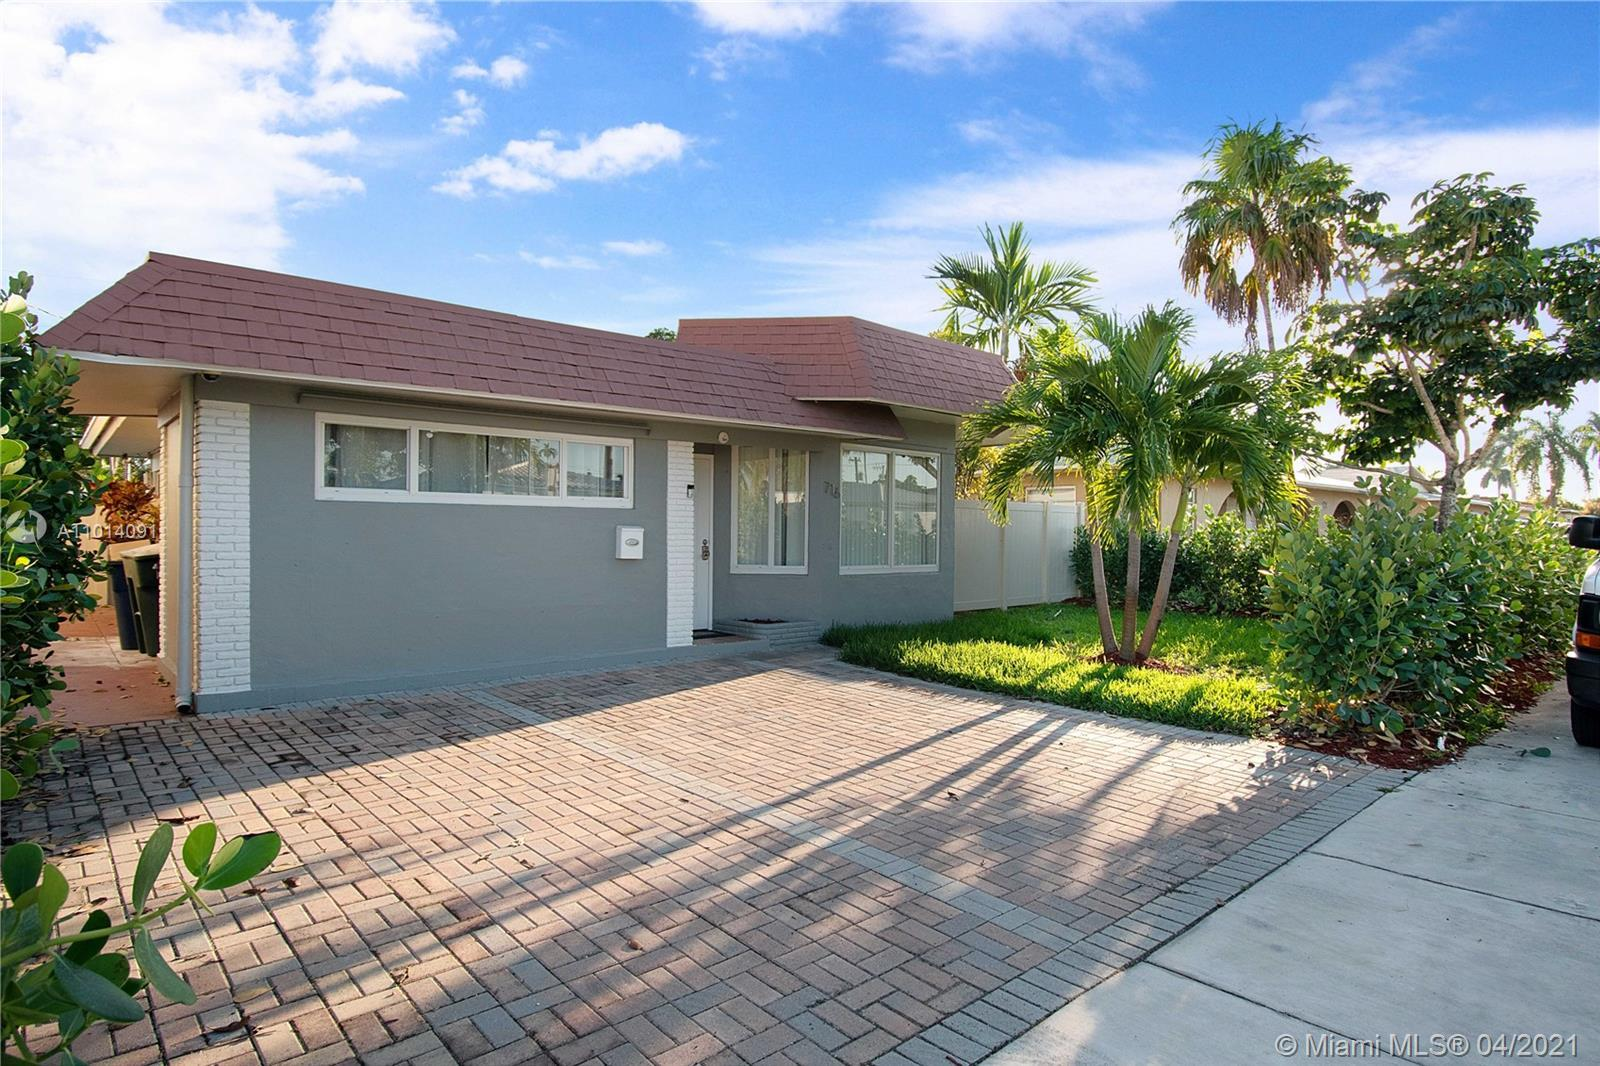 Wonderfully appointed 5 Bedroom, 3 Bath residence features a lush landscaping, private fence and roo